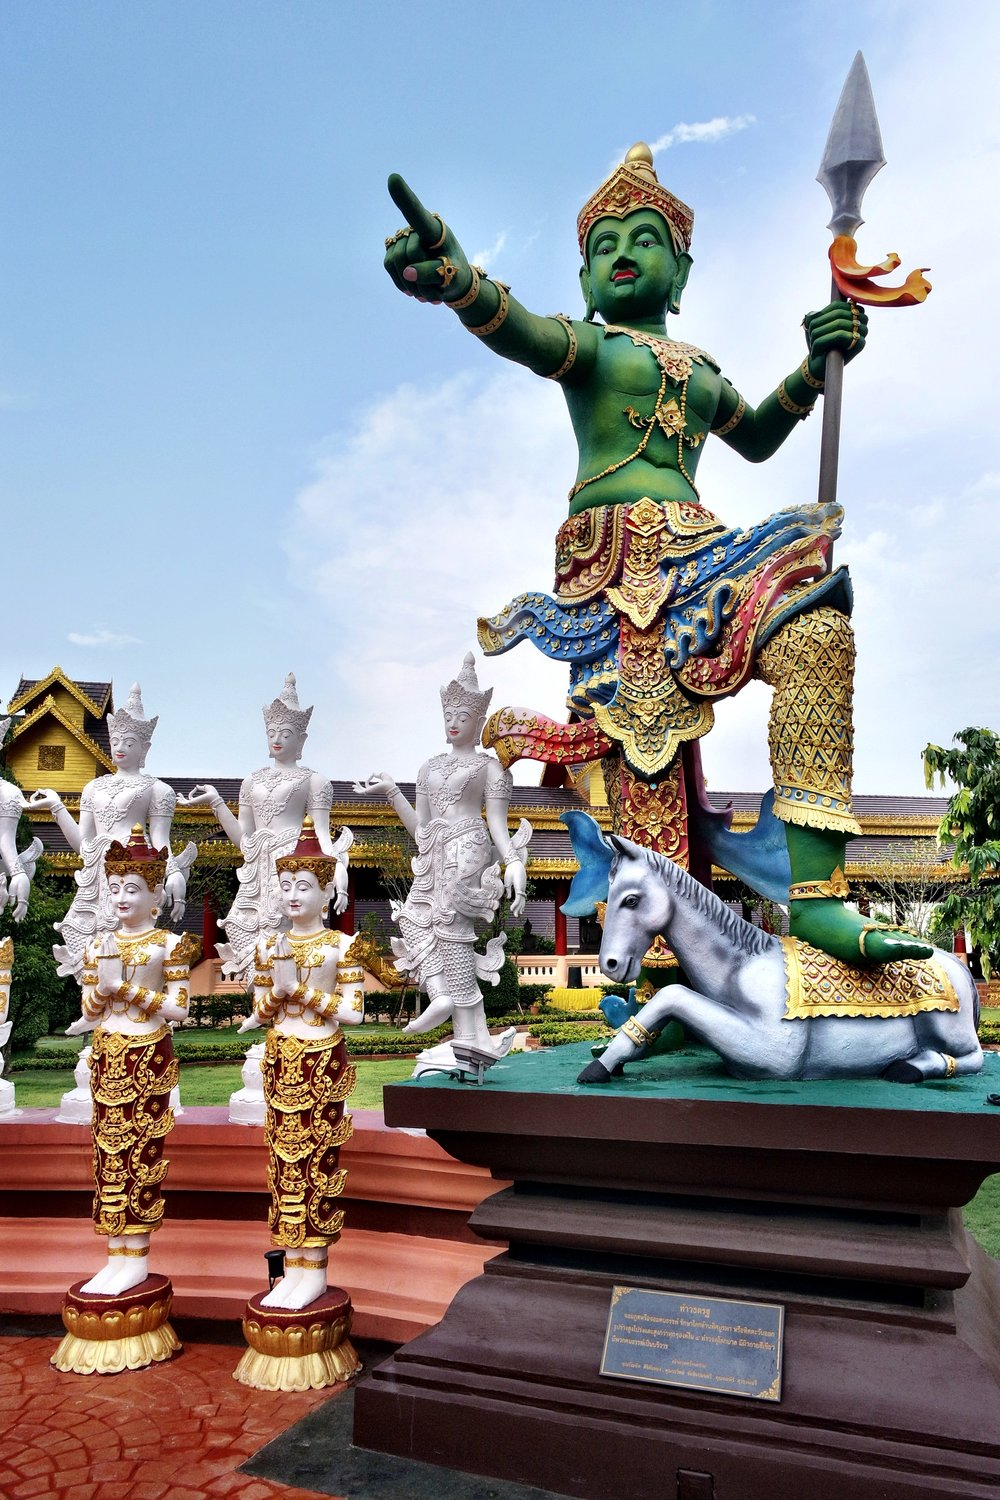 Who's going to love a visit to Wat Sang Kaew? You are!